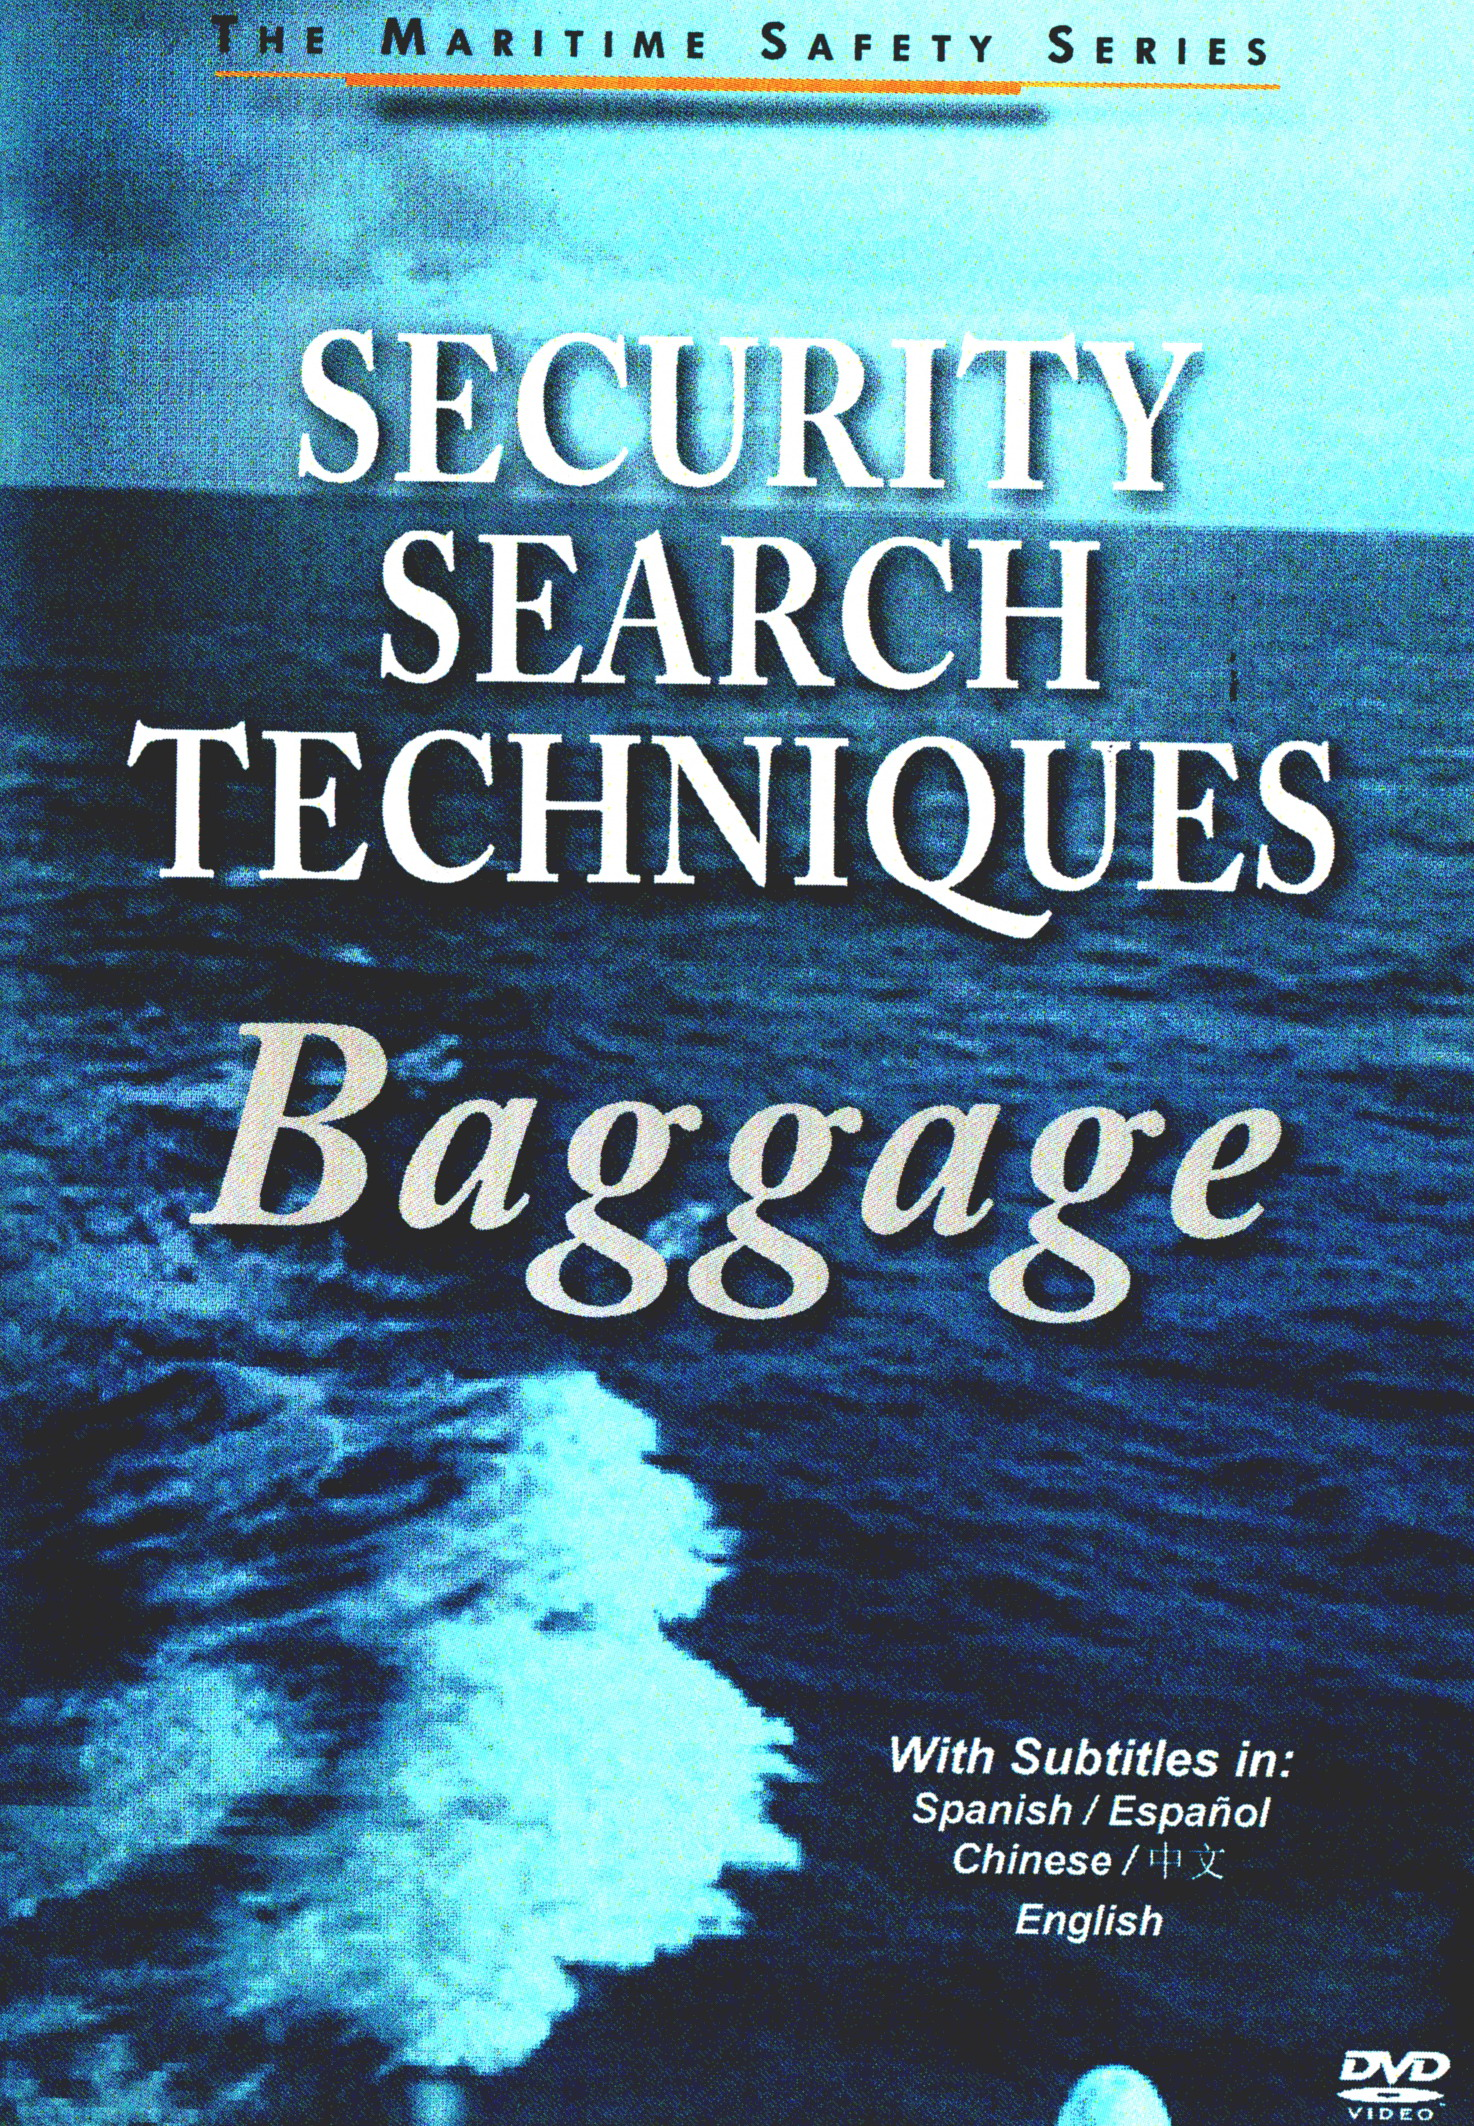 Security Search Techniques: Baggage